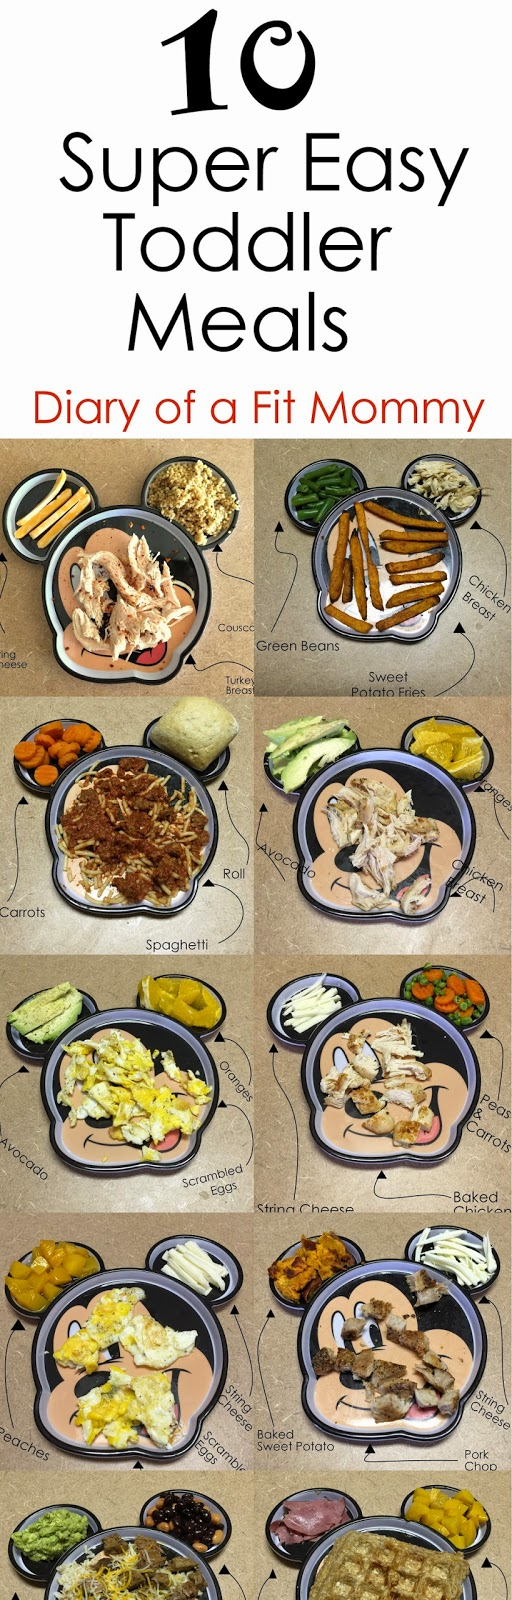 Diary Of A Fit Mommy 10 Easy Toddler Meals For Busy Mommies